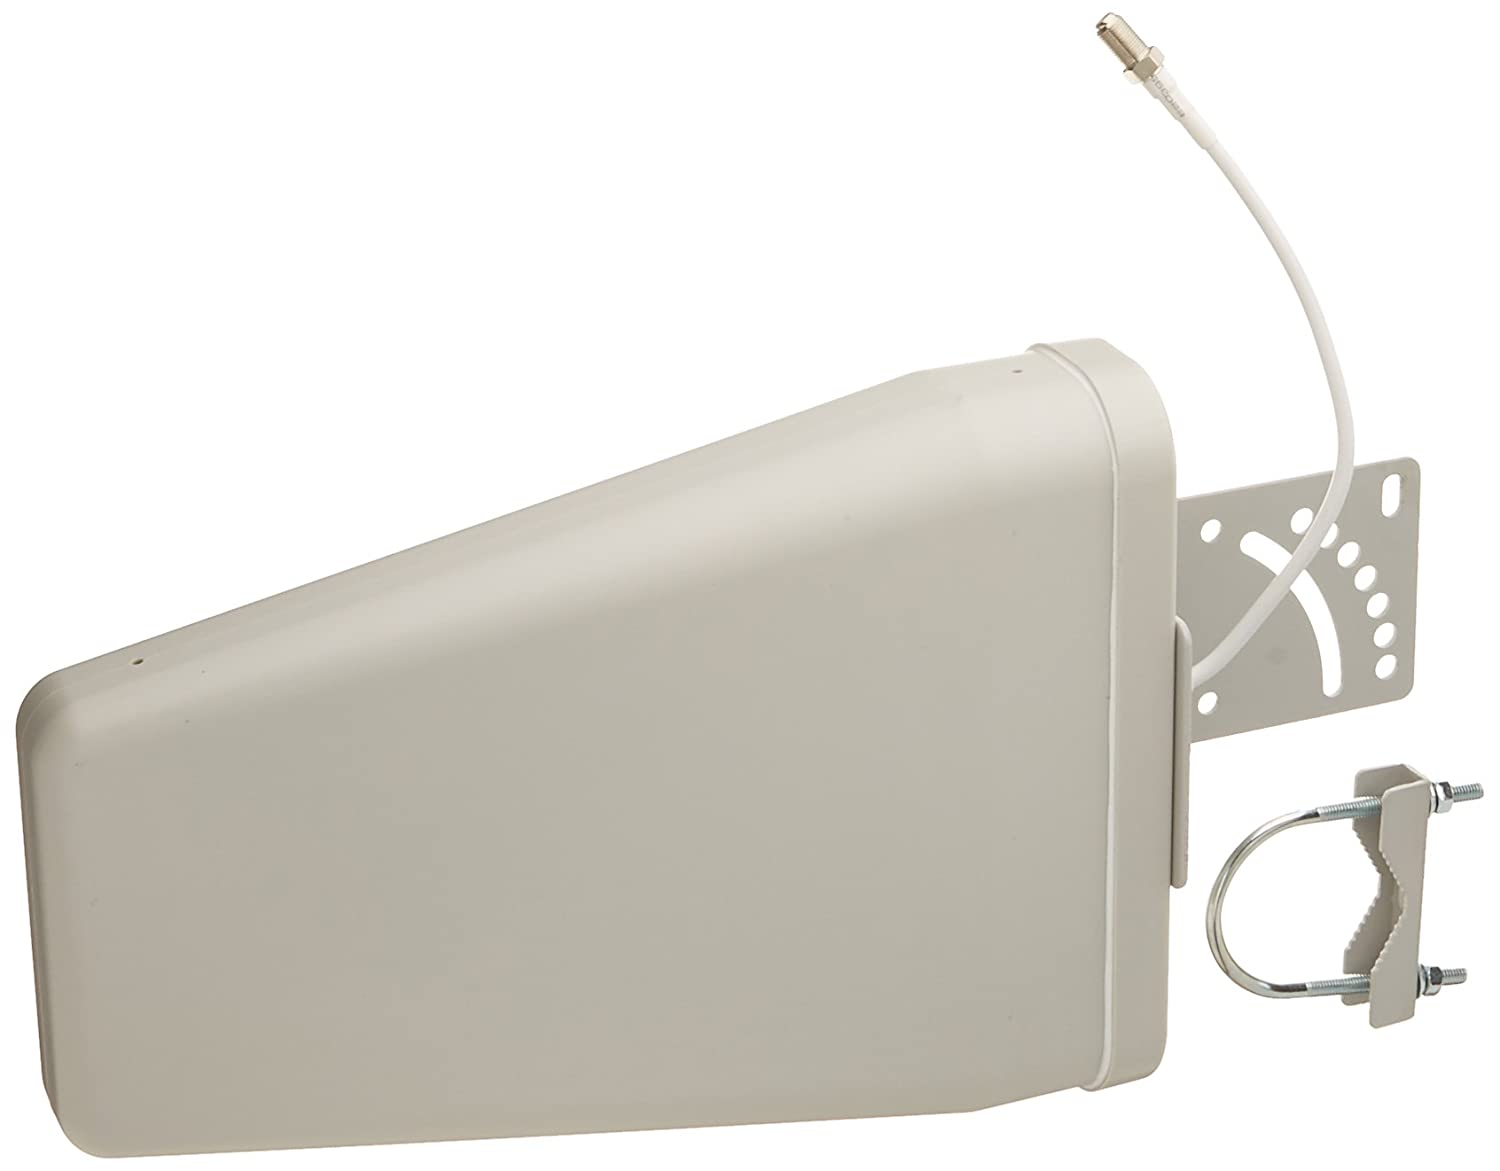 Amazon.com: Wilson Electronics Wideband Directional Antenna 700-2700 MHz,  75 Ohm (314475): WILSON ELECTRONICS: Cell Phones & Accessories